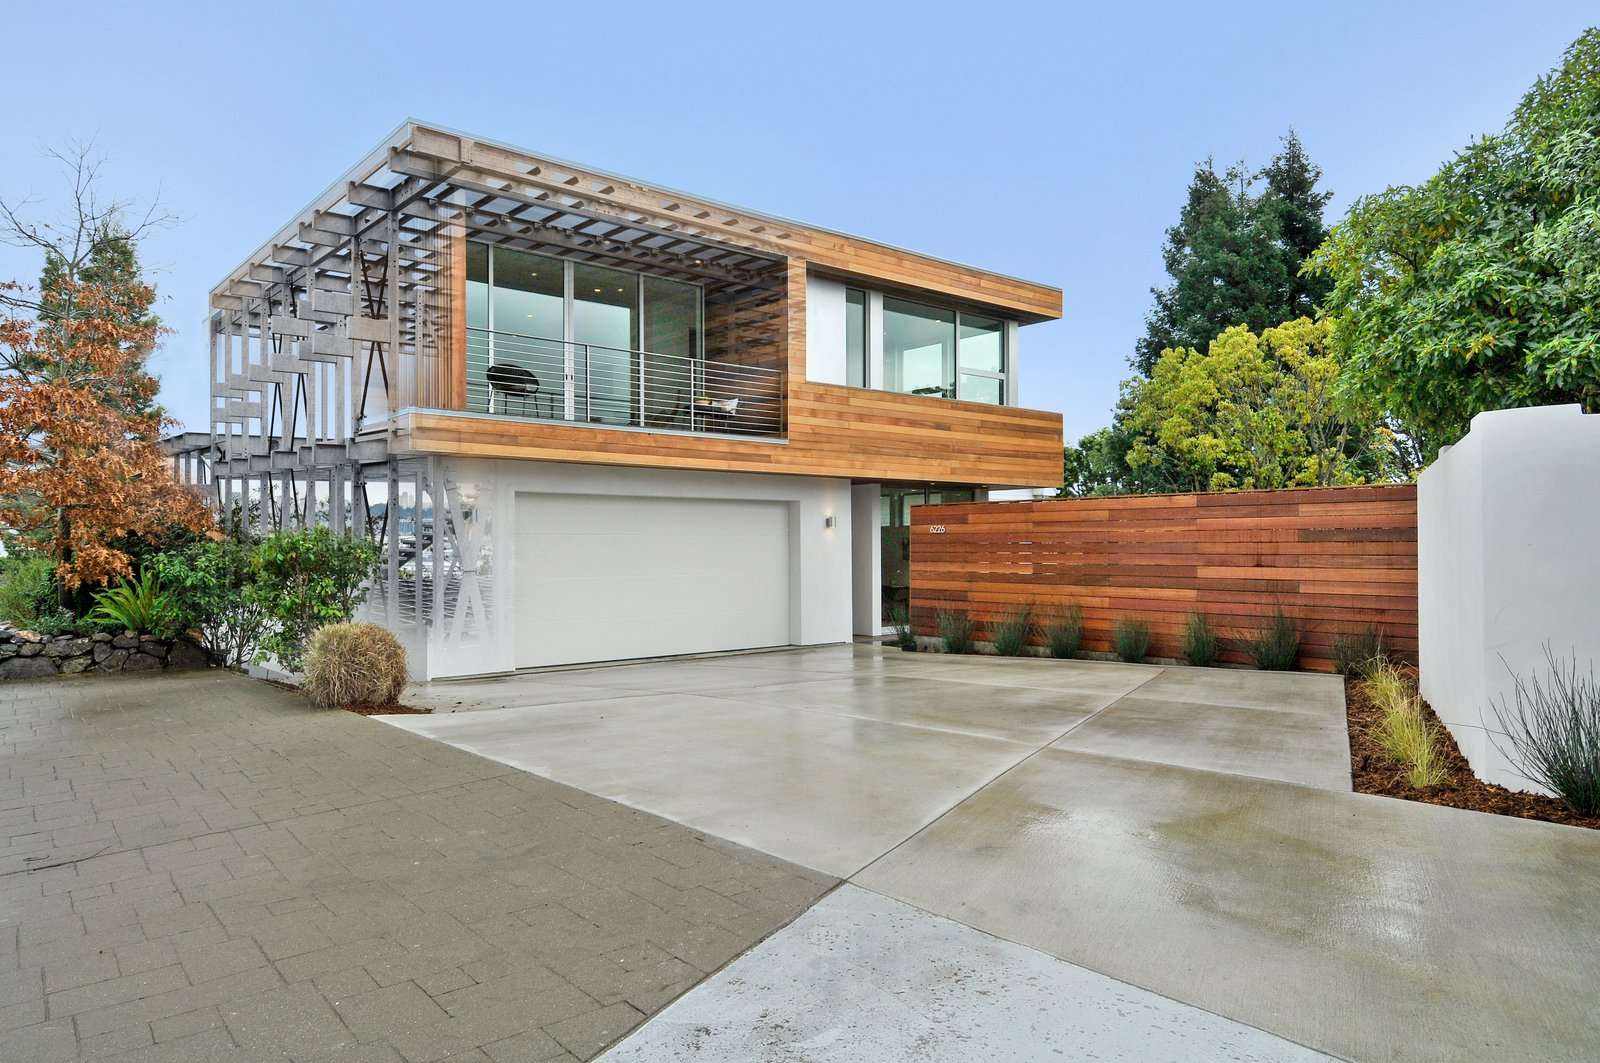 Outdoor, Pavers Patio, Porch, Deck, and Concrete Patio, Porch, Deck The Acacia Residence featuring the BONE Structure building technology  Acacia Residence by BONE Structure